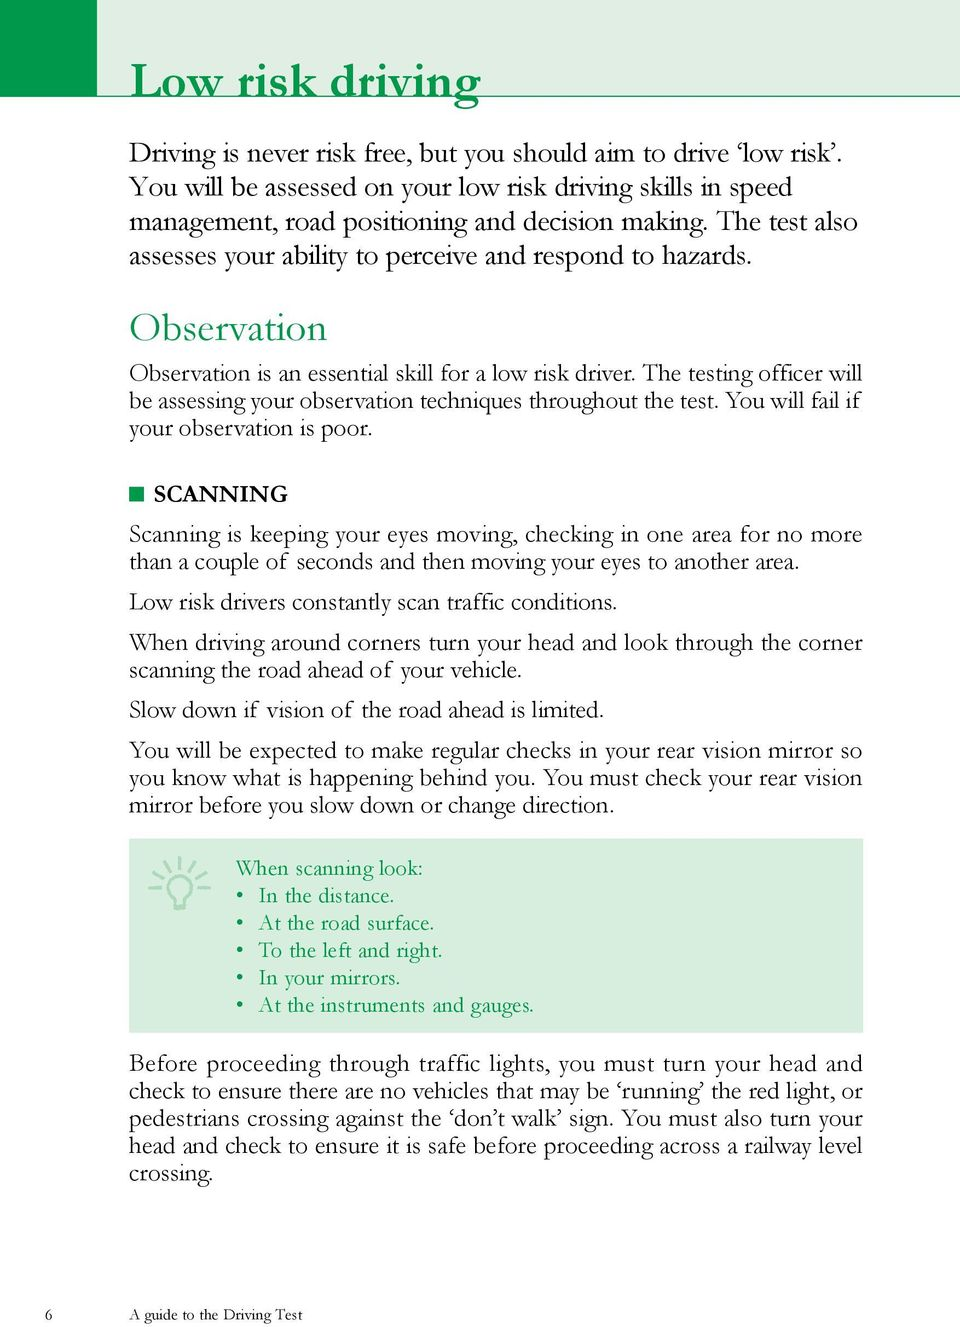 The testing officer will be assessing your observation techniques throughout the test. You will fail if your observation is poor.